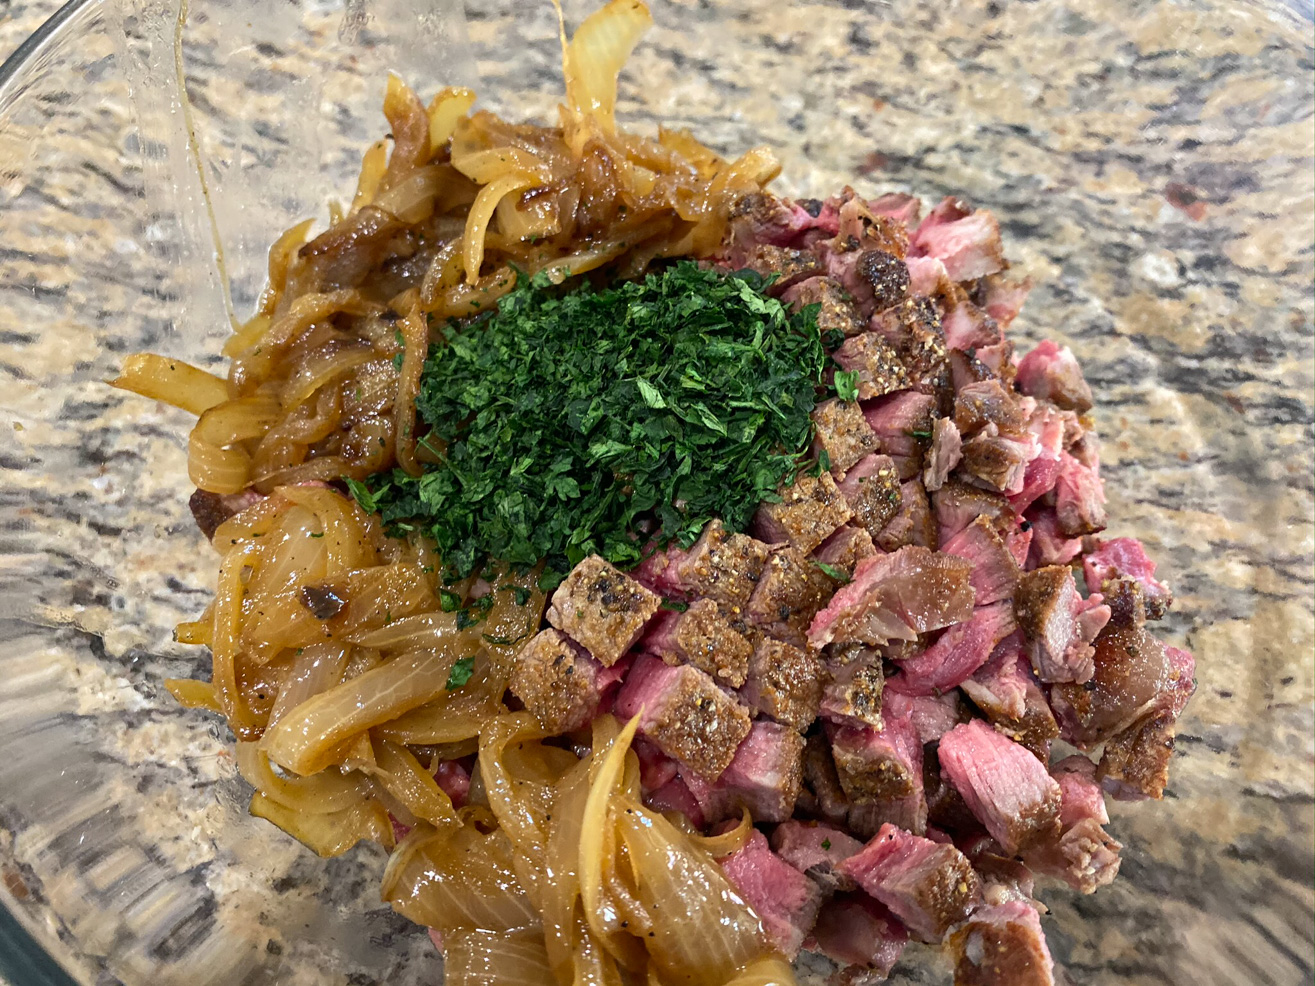 A bowl of seared filet mignon cubes, caramelized onion, and herbs